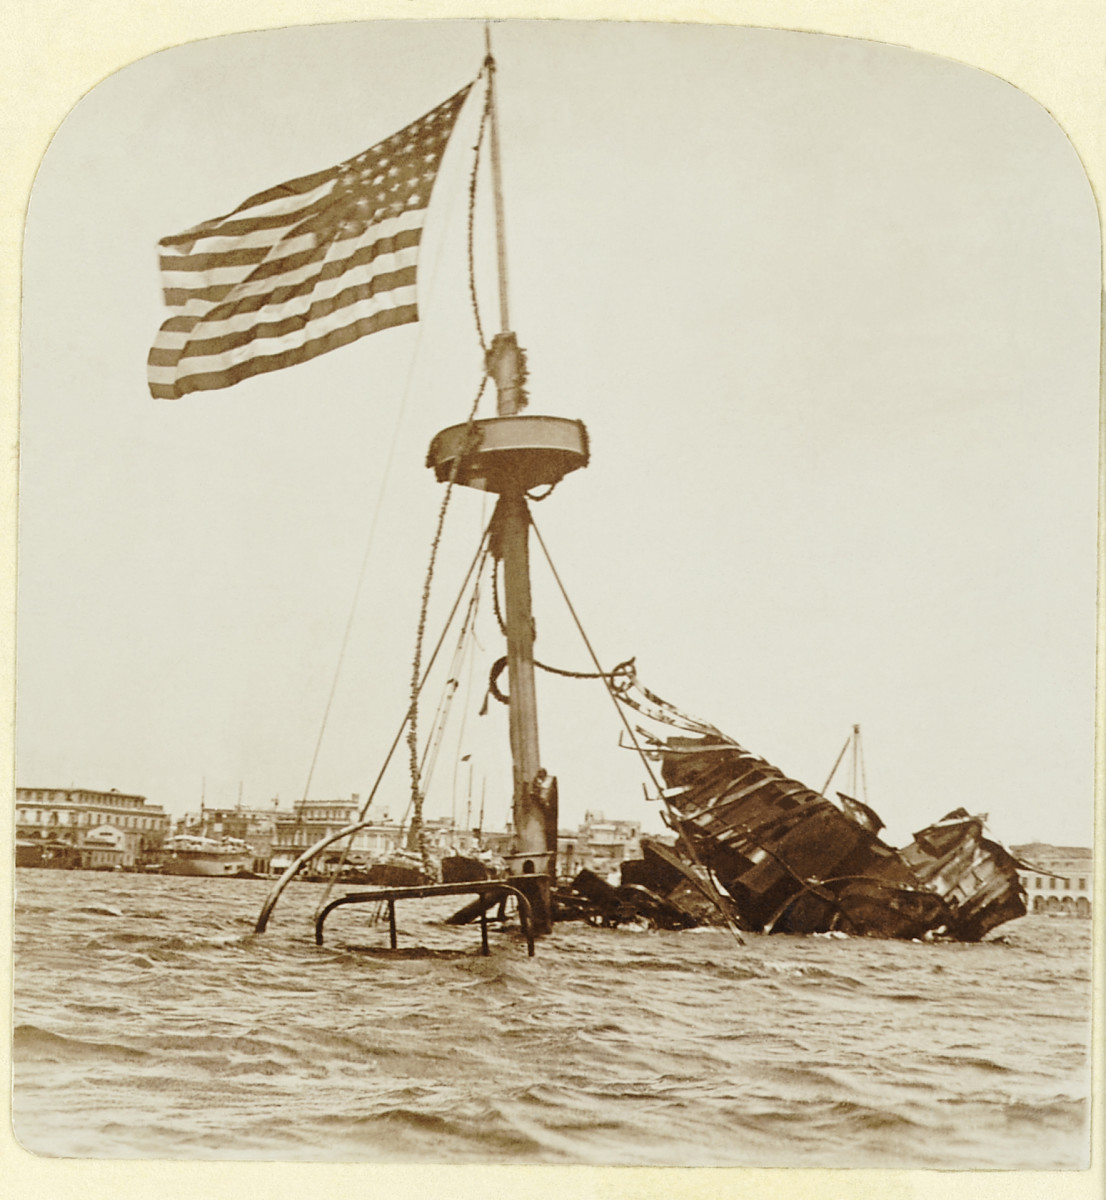 USS Maine wreckage, February 15, 1898 leading to the Spanish-American War